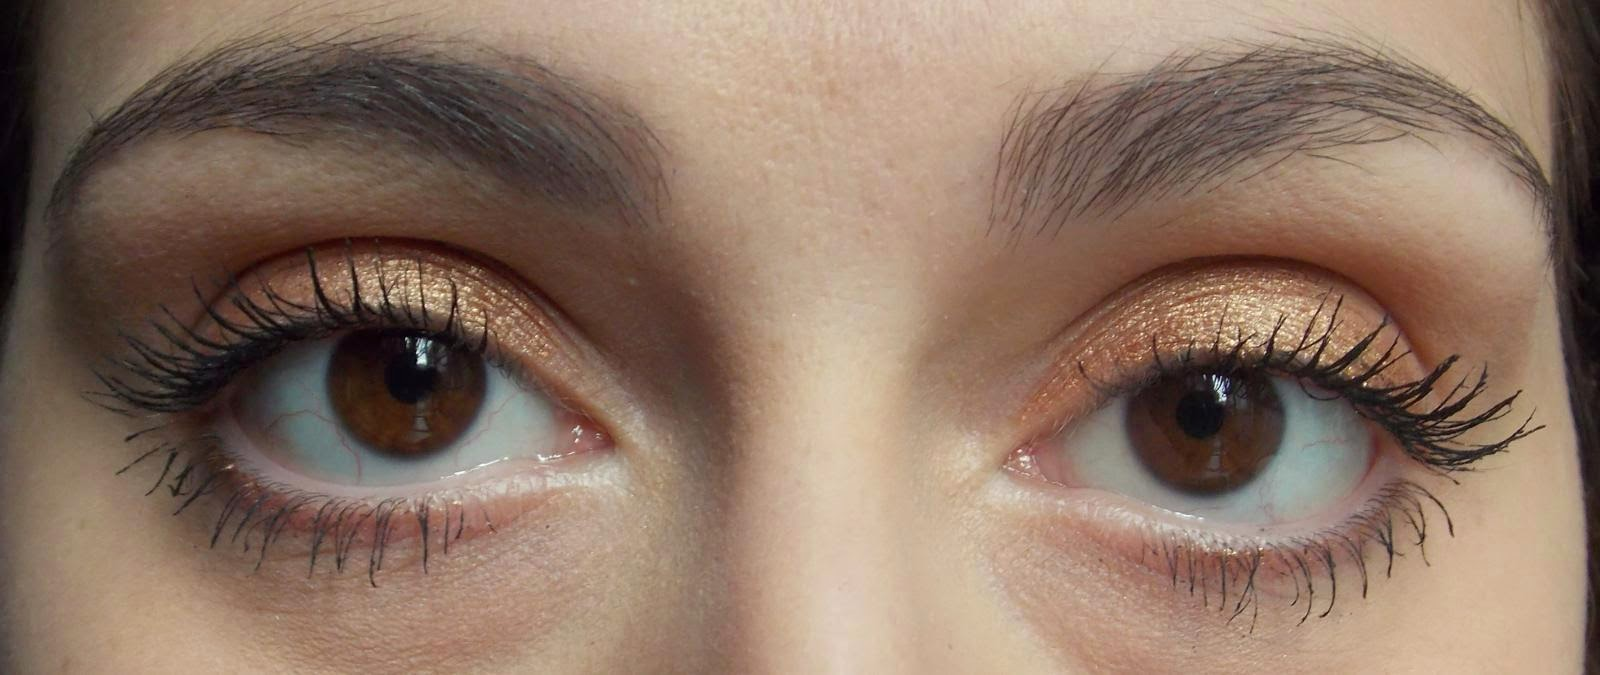 Mascara Runs Under Eyes hd image